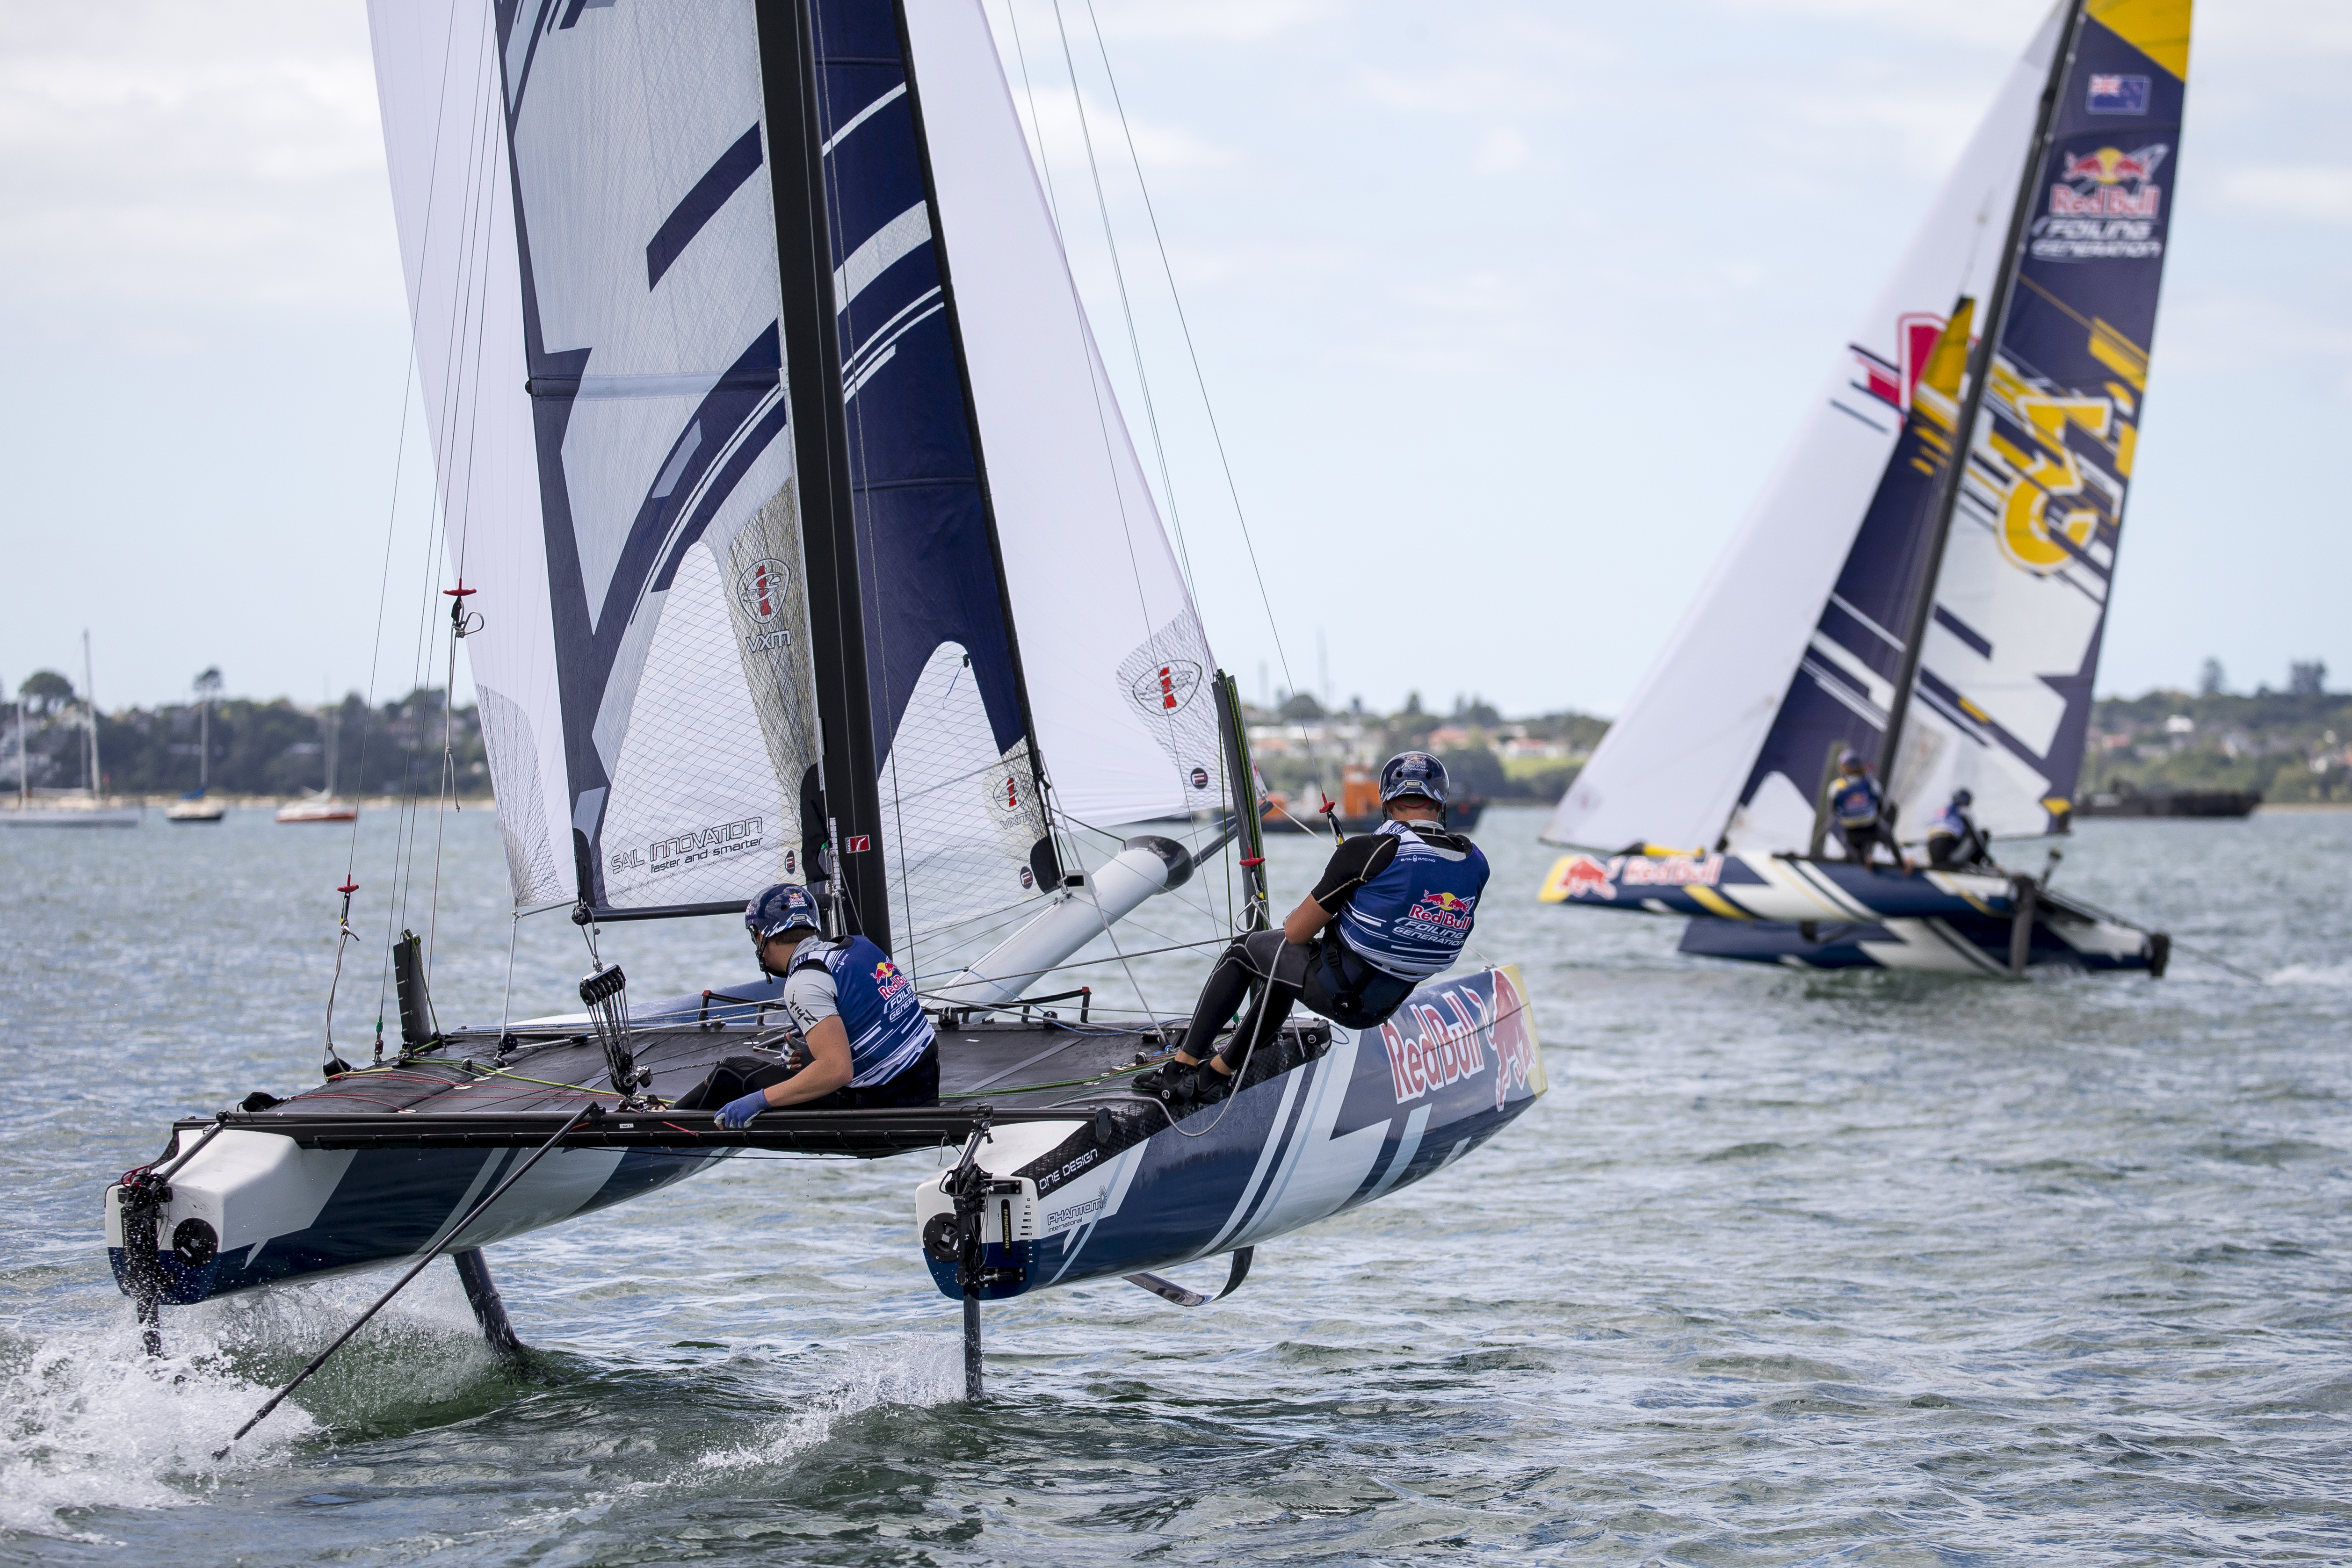 Sailing: Youngsters crowned foiling champs in Auckland - NZ Herald